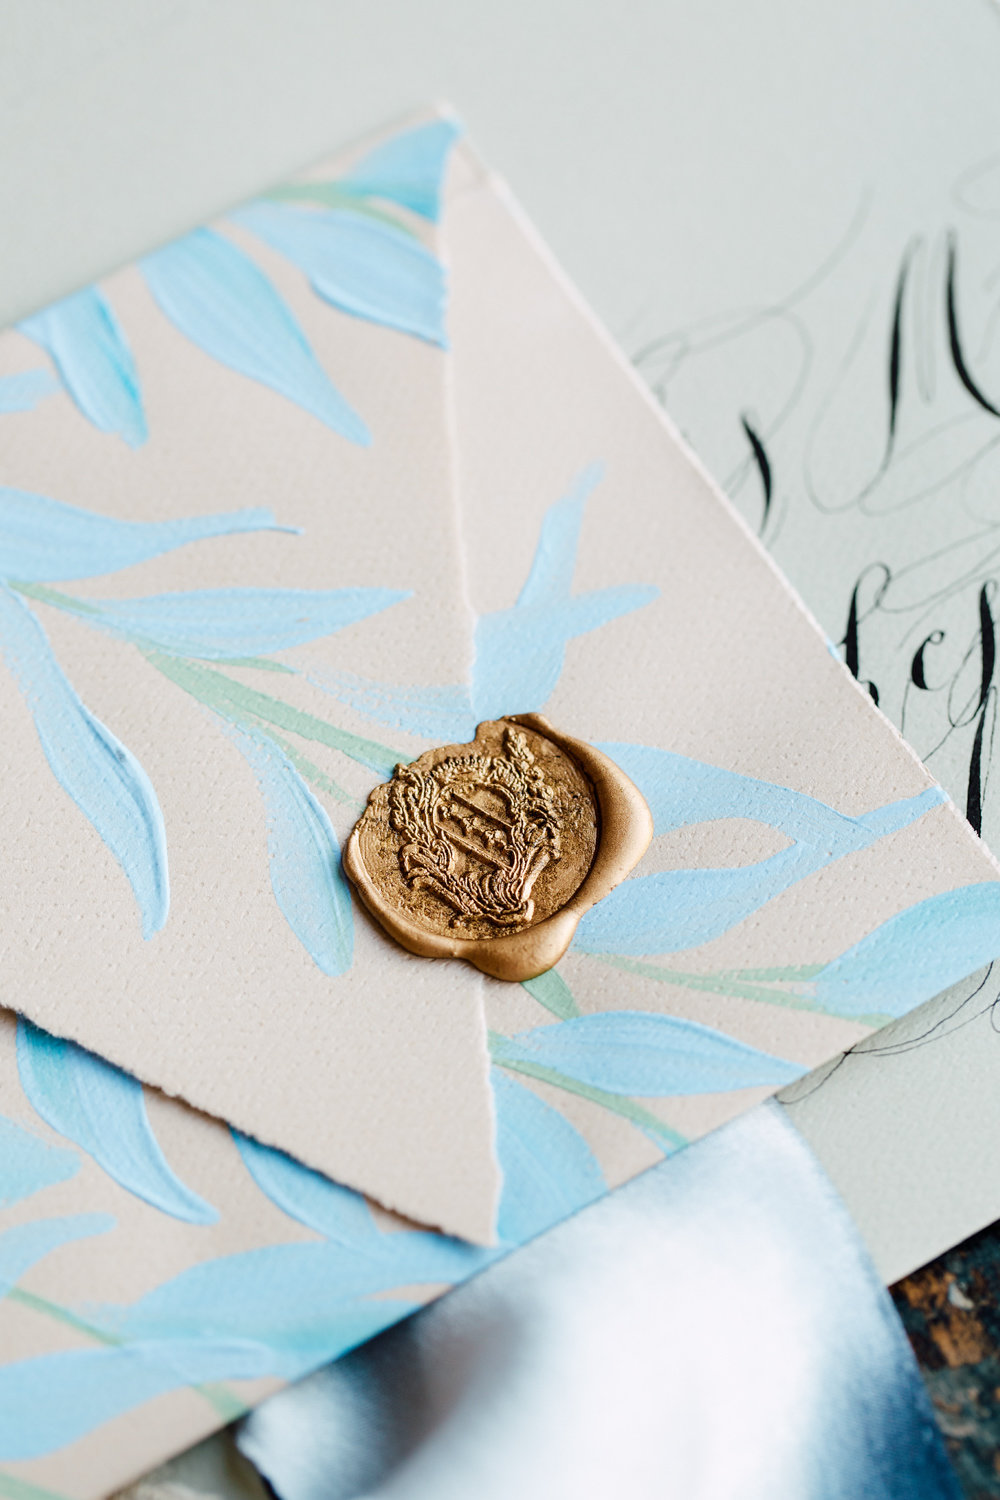 French Inspired Wedding Invitations - blue leaves hand painted envelope detail with a rich gold wax seal